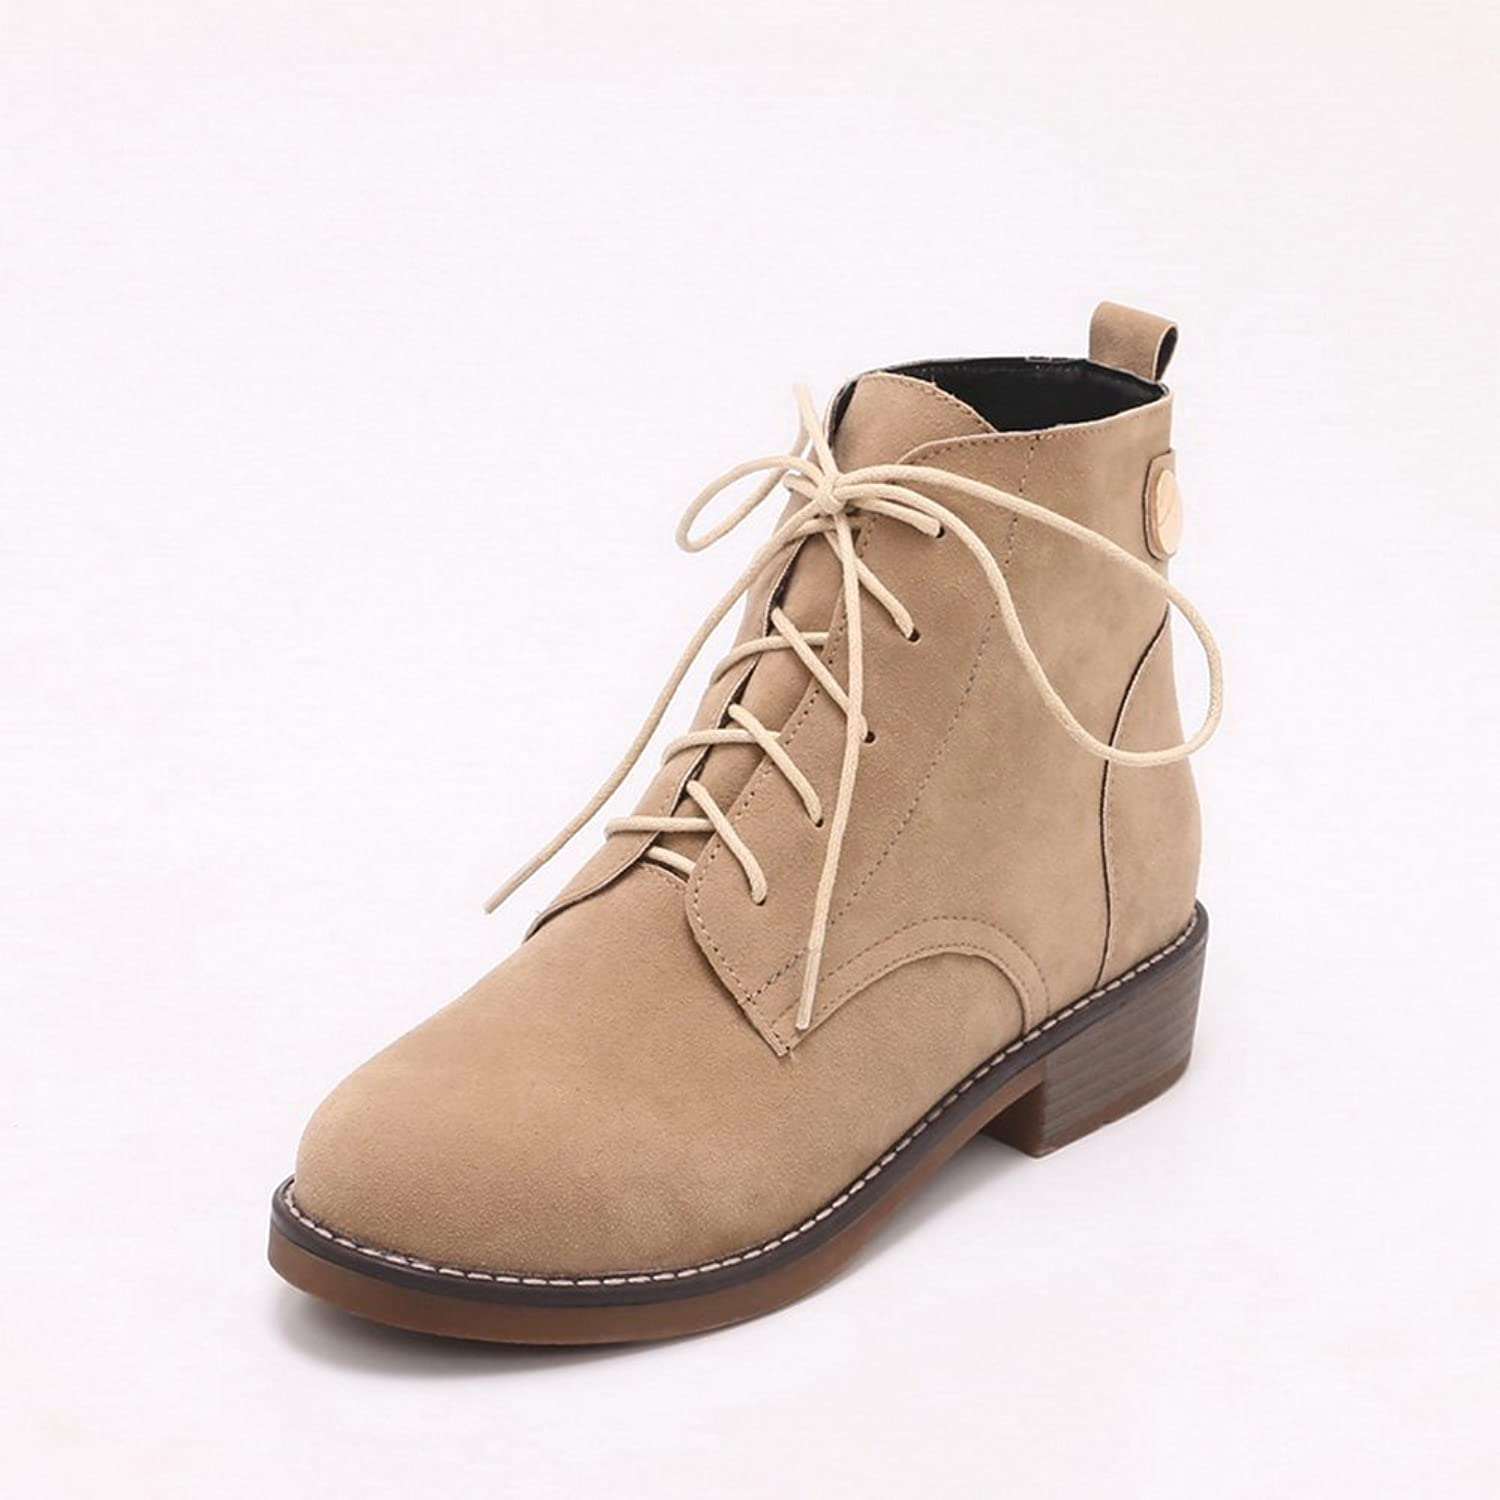 AandN Womens Boots Closed-Toe Lace-Up Adjustable-Strap No-Heel Warm Lining Solid Road Low-Top Smooth Leather Fashion Urethane Boots DKU01916